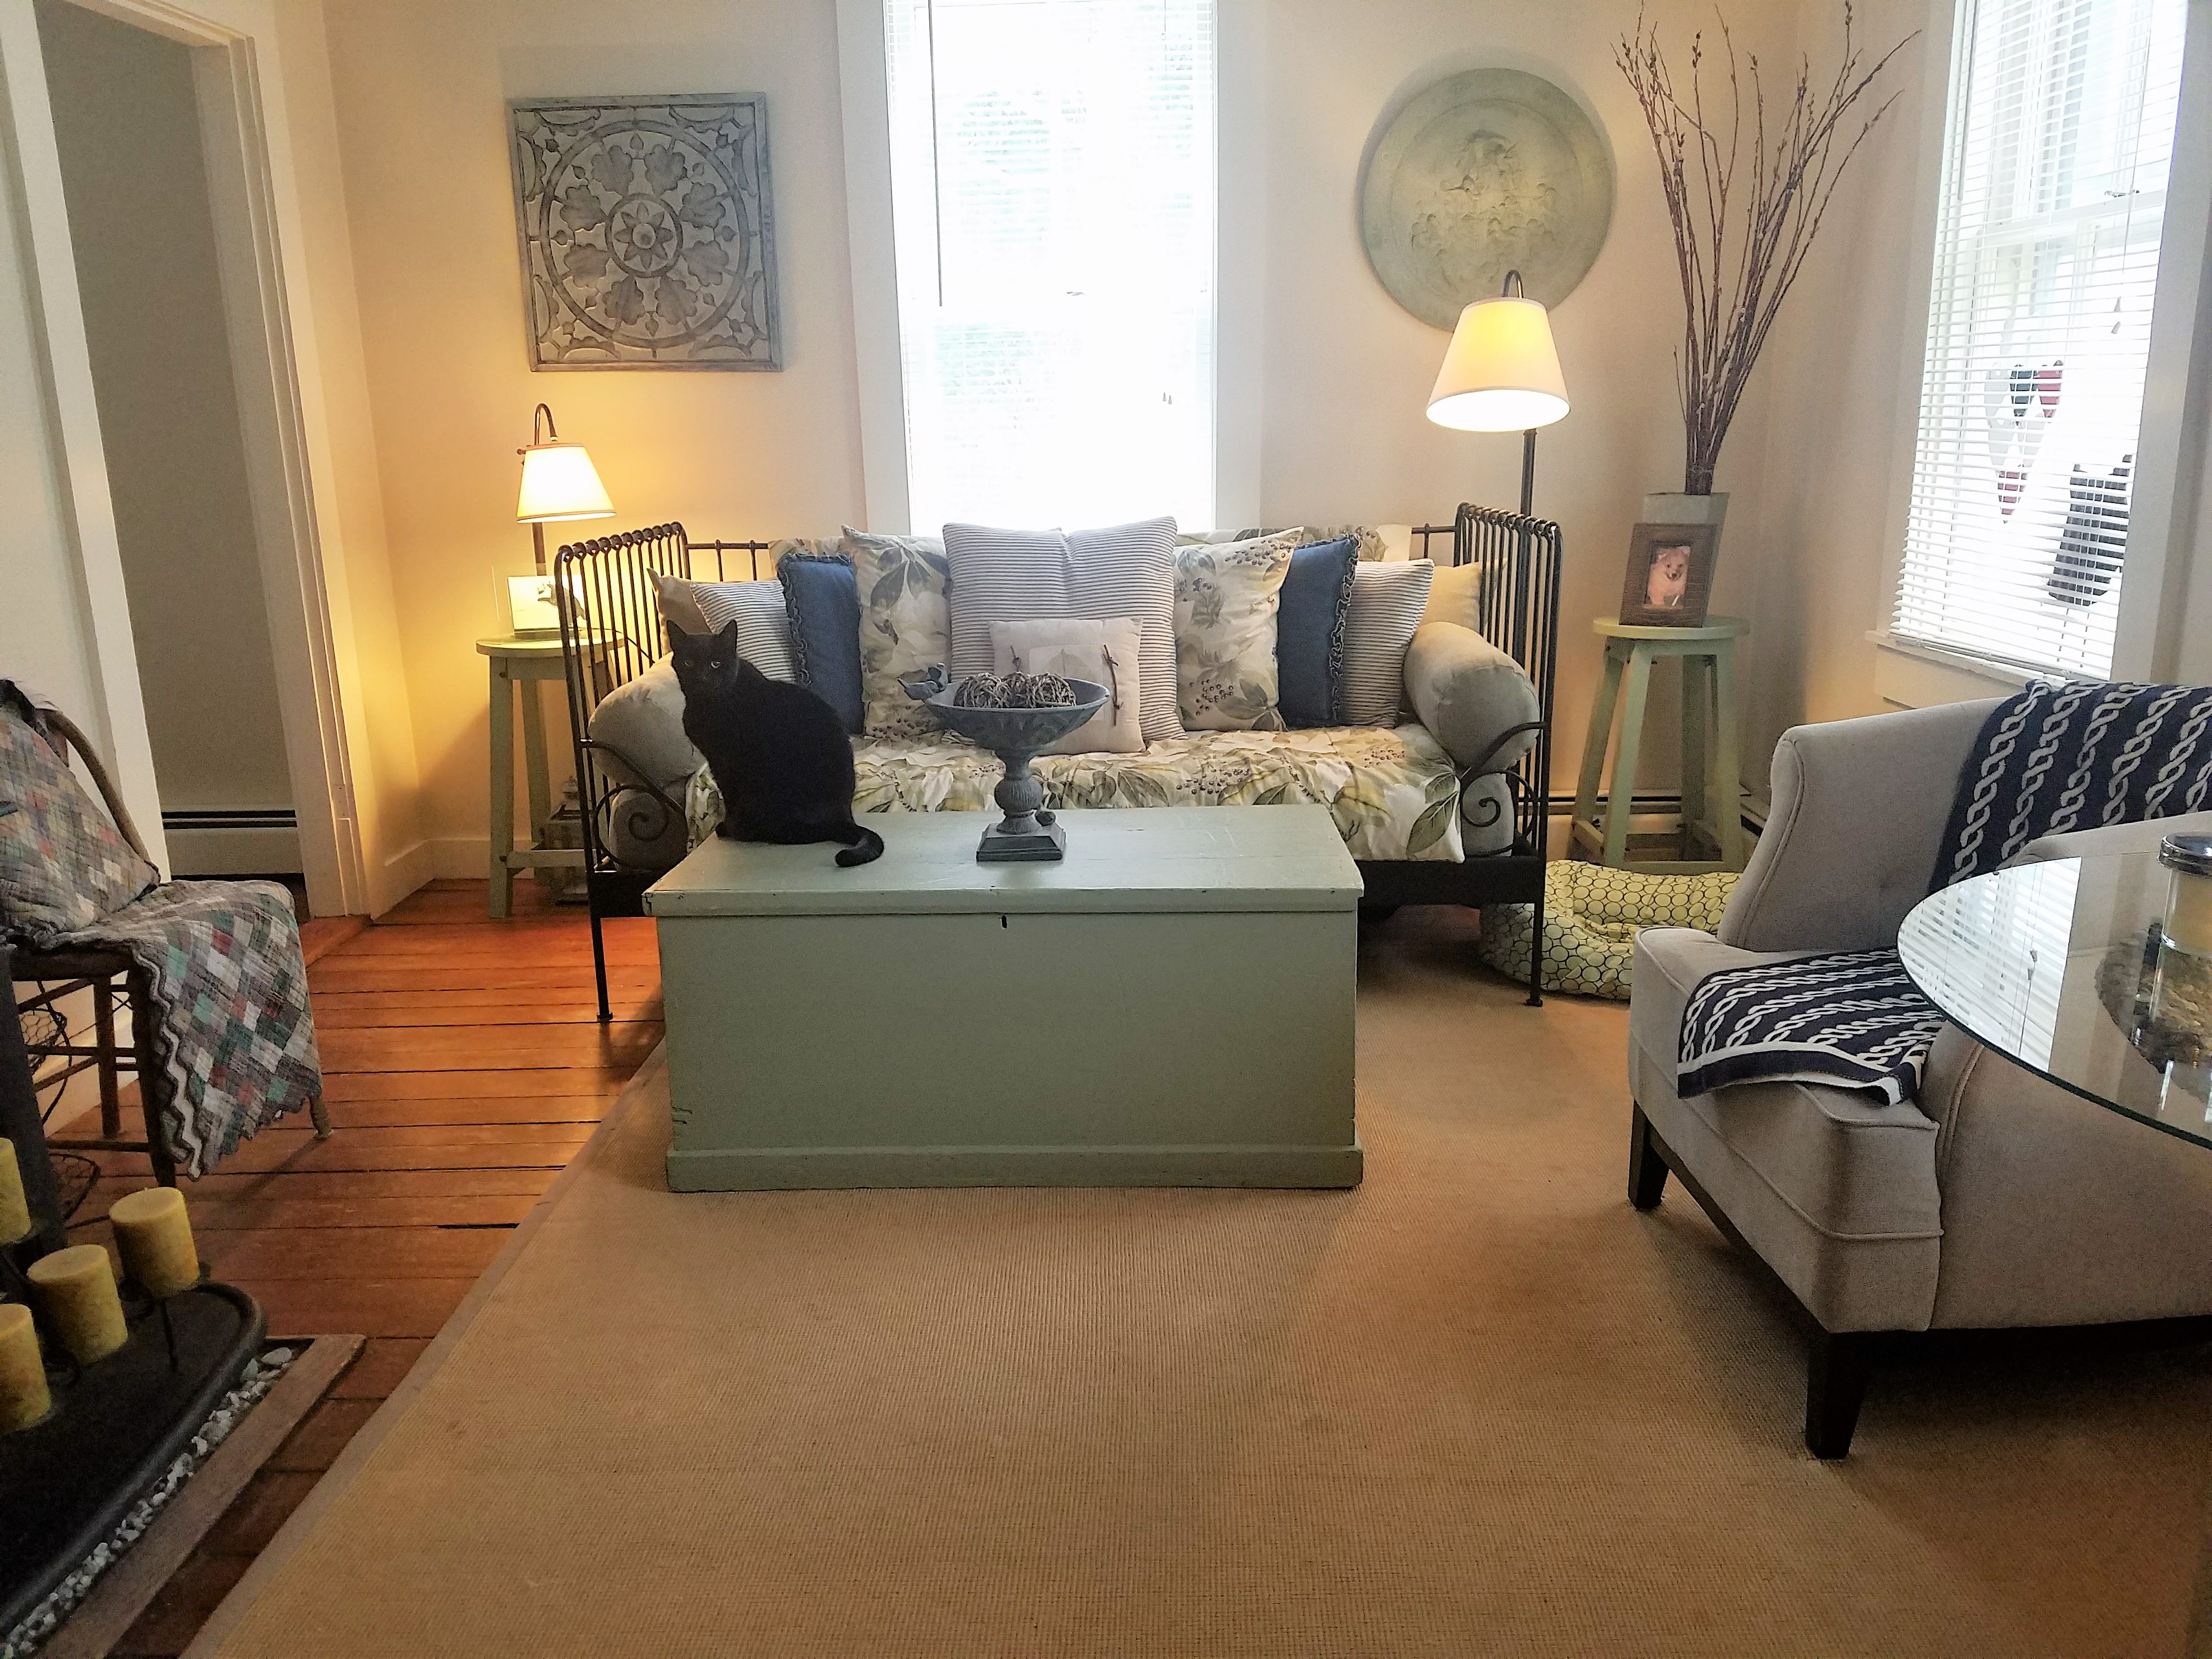 best rental in newport available yearly march 1 the rental market in newport ri is absurb right now it s unbelievable what a 2 bedroom pos on the third floor will rent for 1800